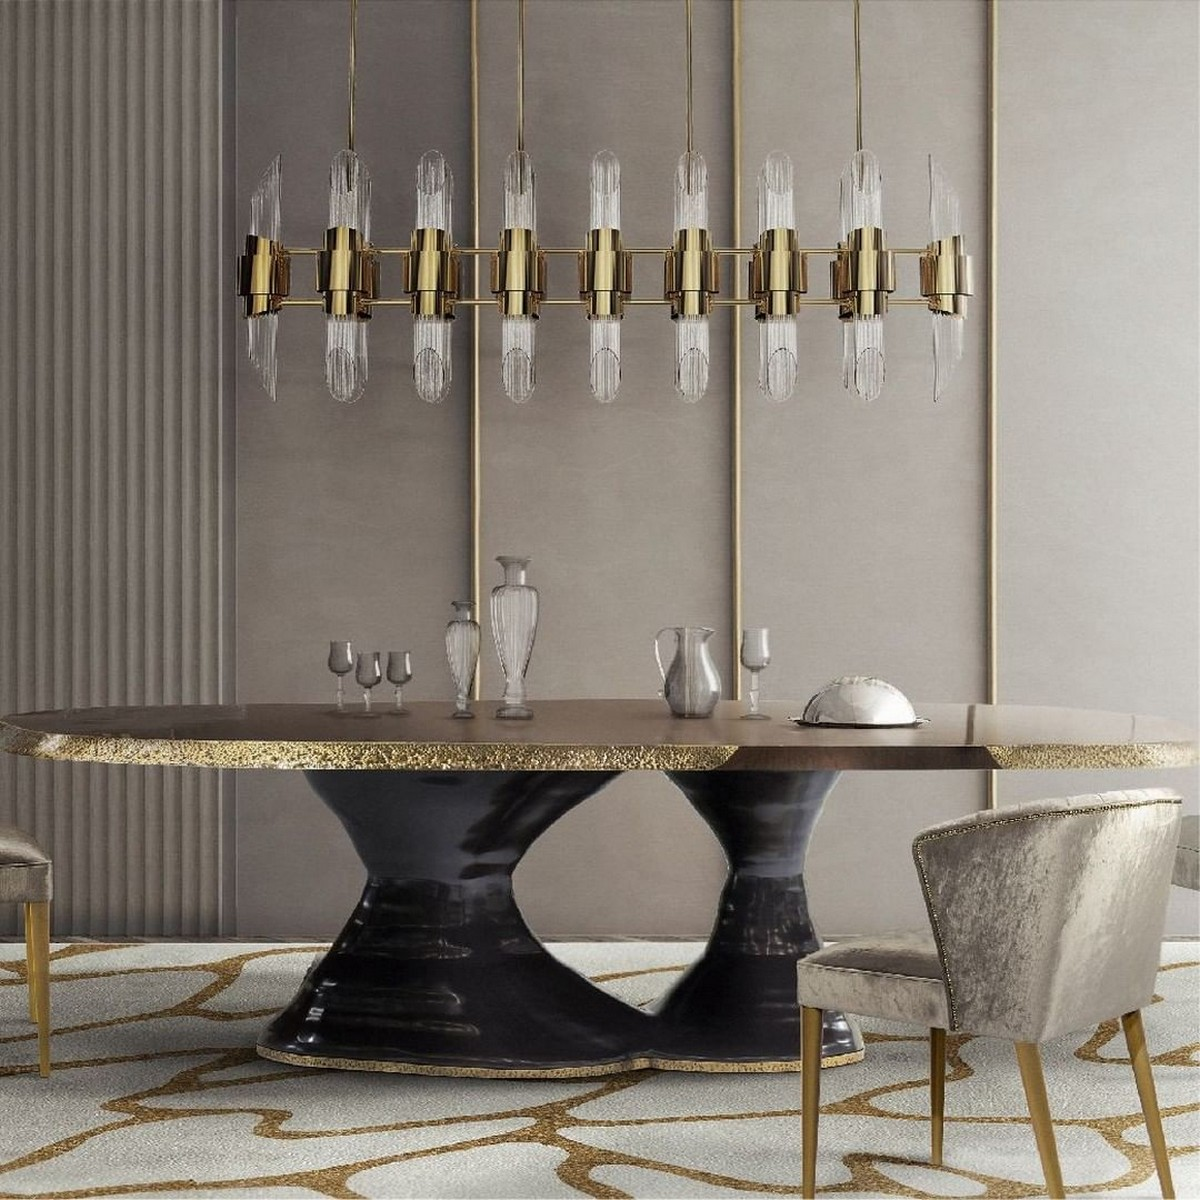 Trendy Dining Tables For 2019 (Part III) trendy dining tables Trendy Dining Tables For 2019 (Part III) plateau 1